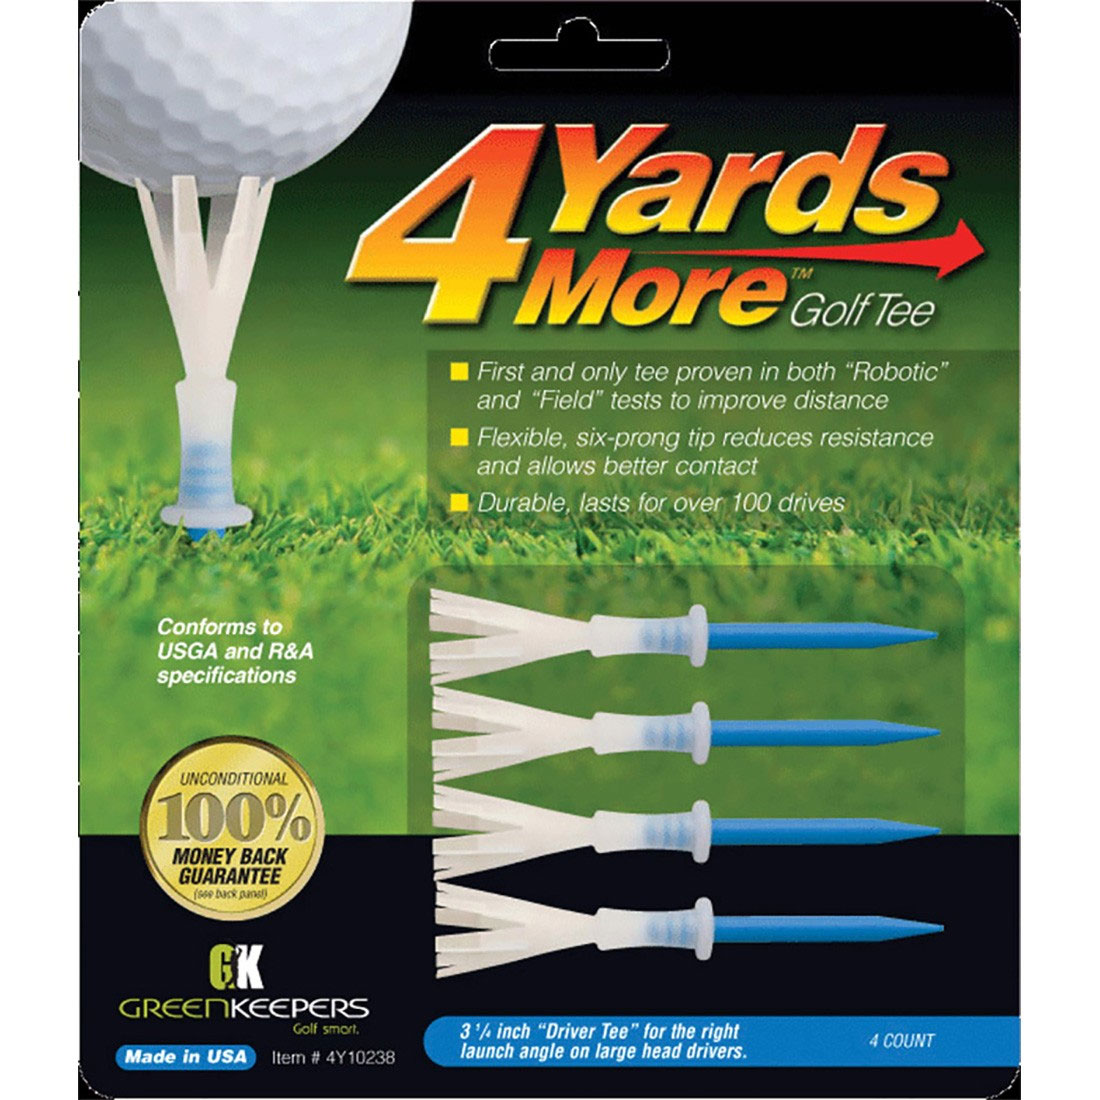 "Green Keepers 4 Yards More 3 1/4"" Golf Tee"